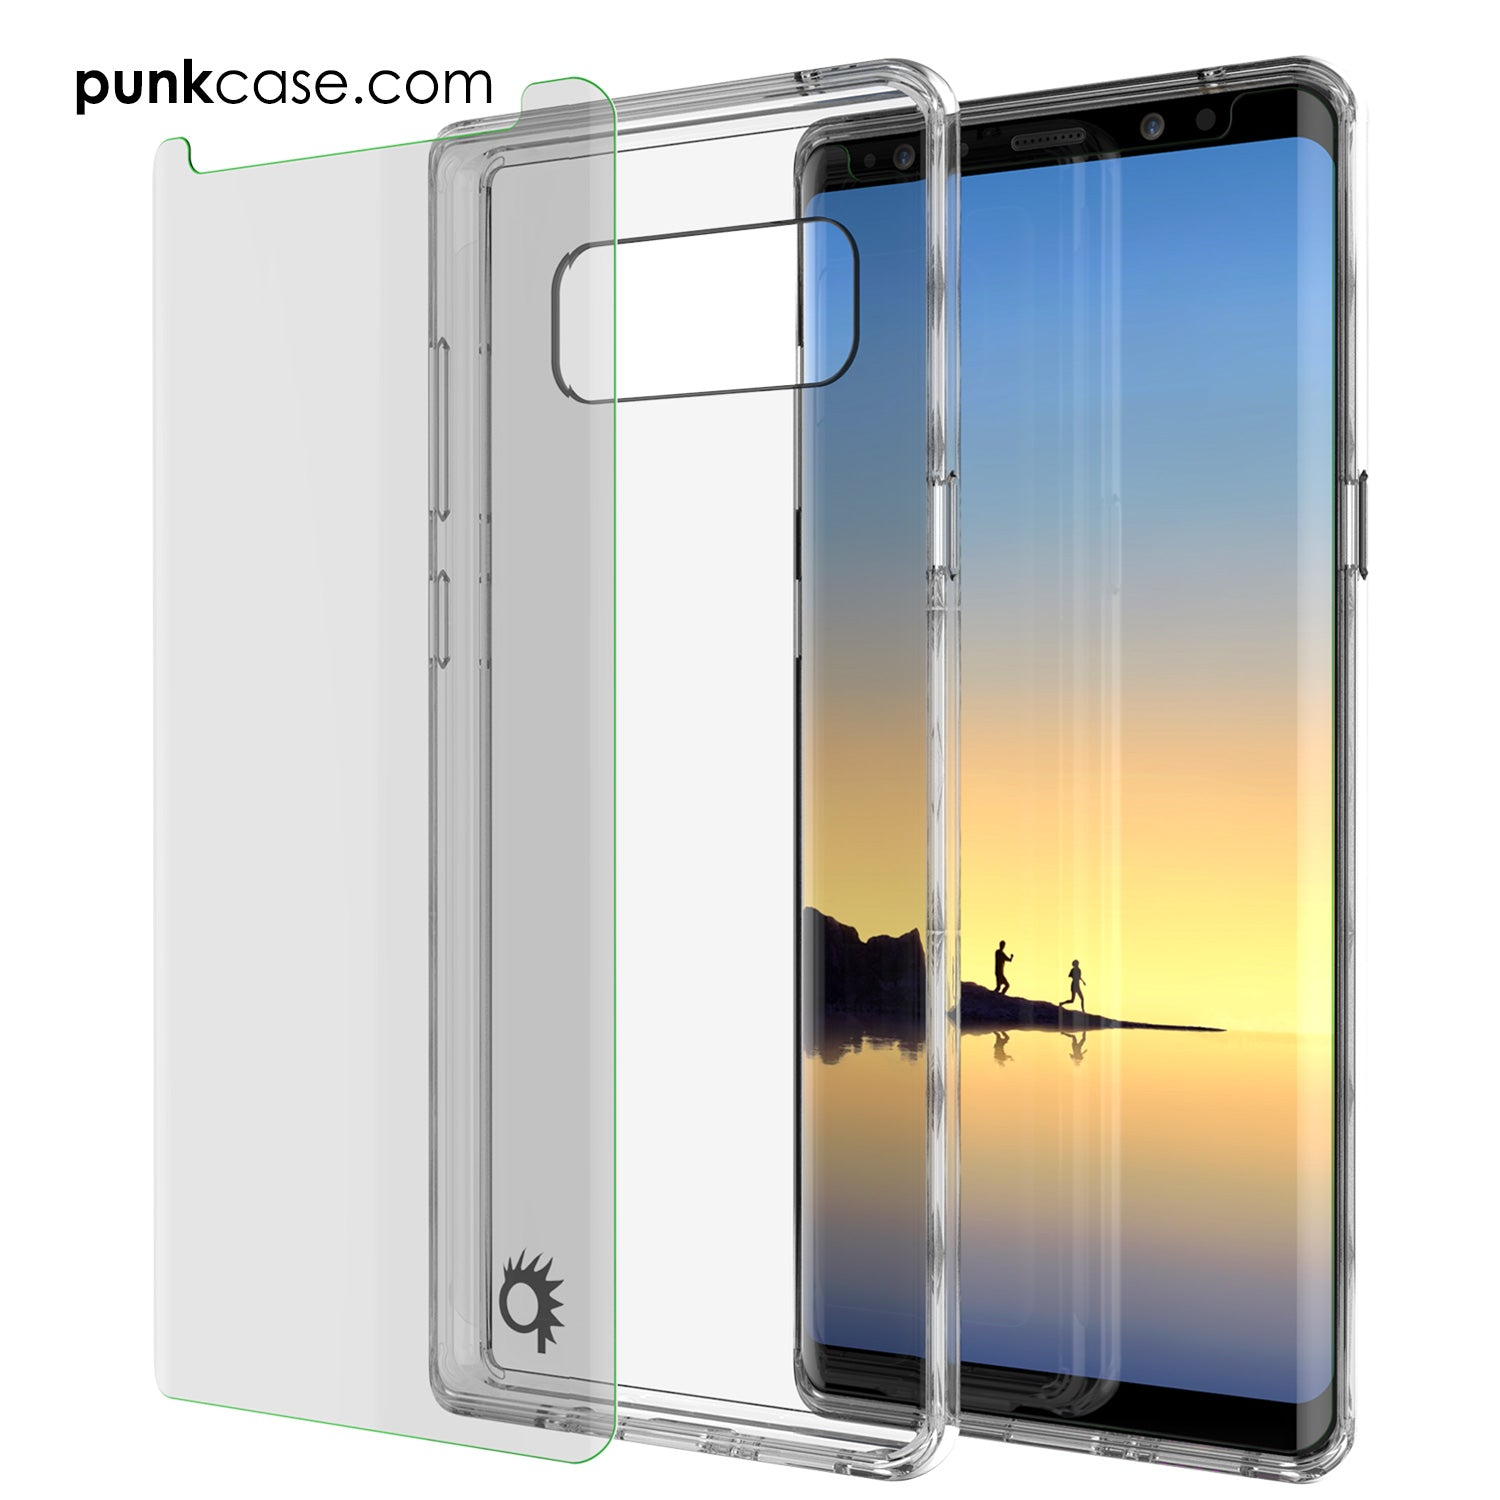 Galaxy Note 8 Case, PUNKcase [LUCID 2.0 Series] [Slim Fit] Armor Cover w/Integrated Anti-Shock System & PUNKSHIELD Screen Protector [Clear]